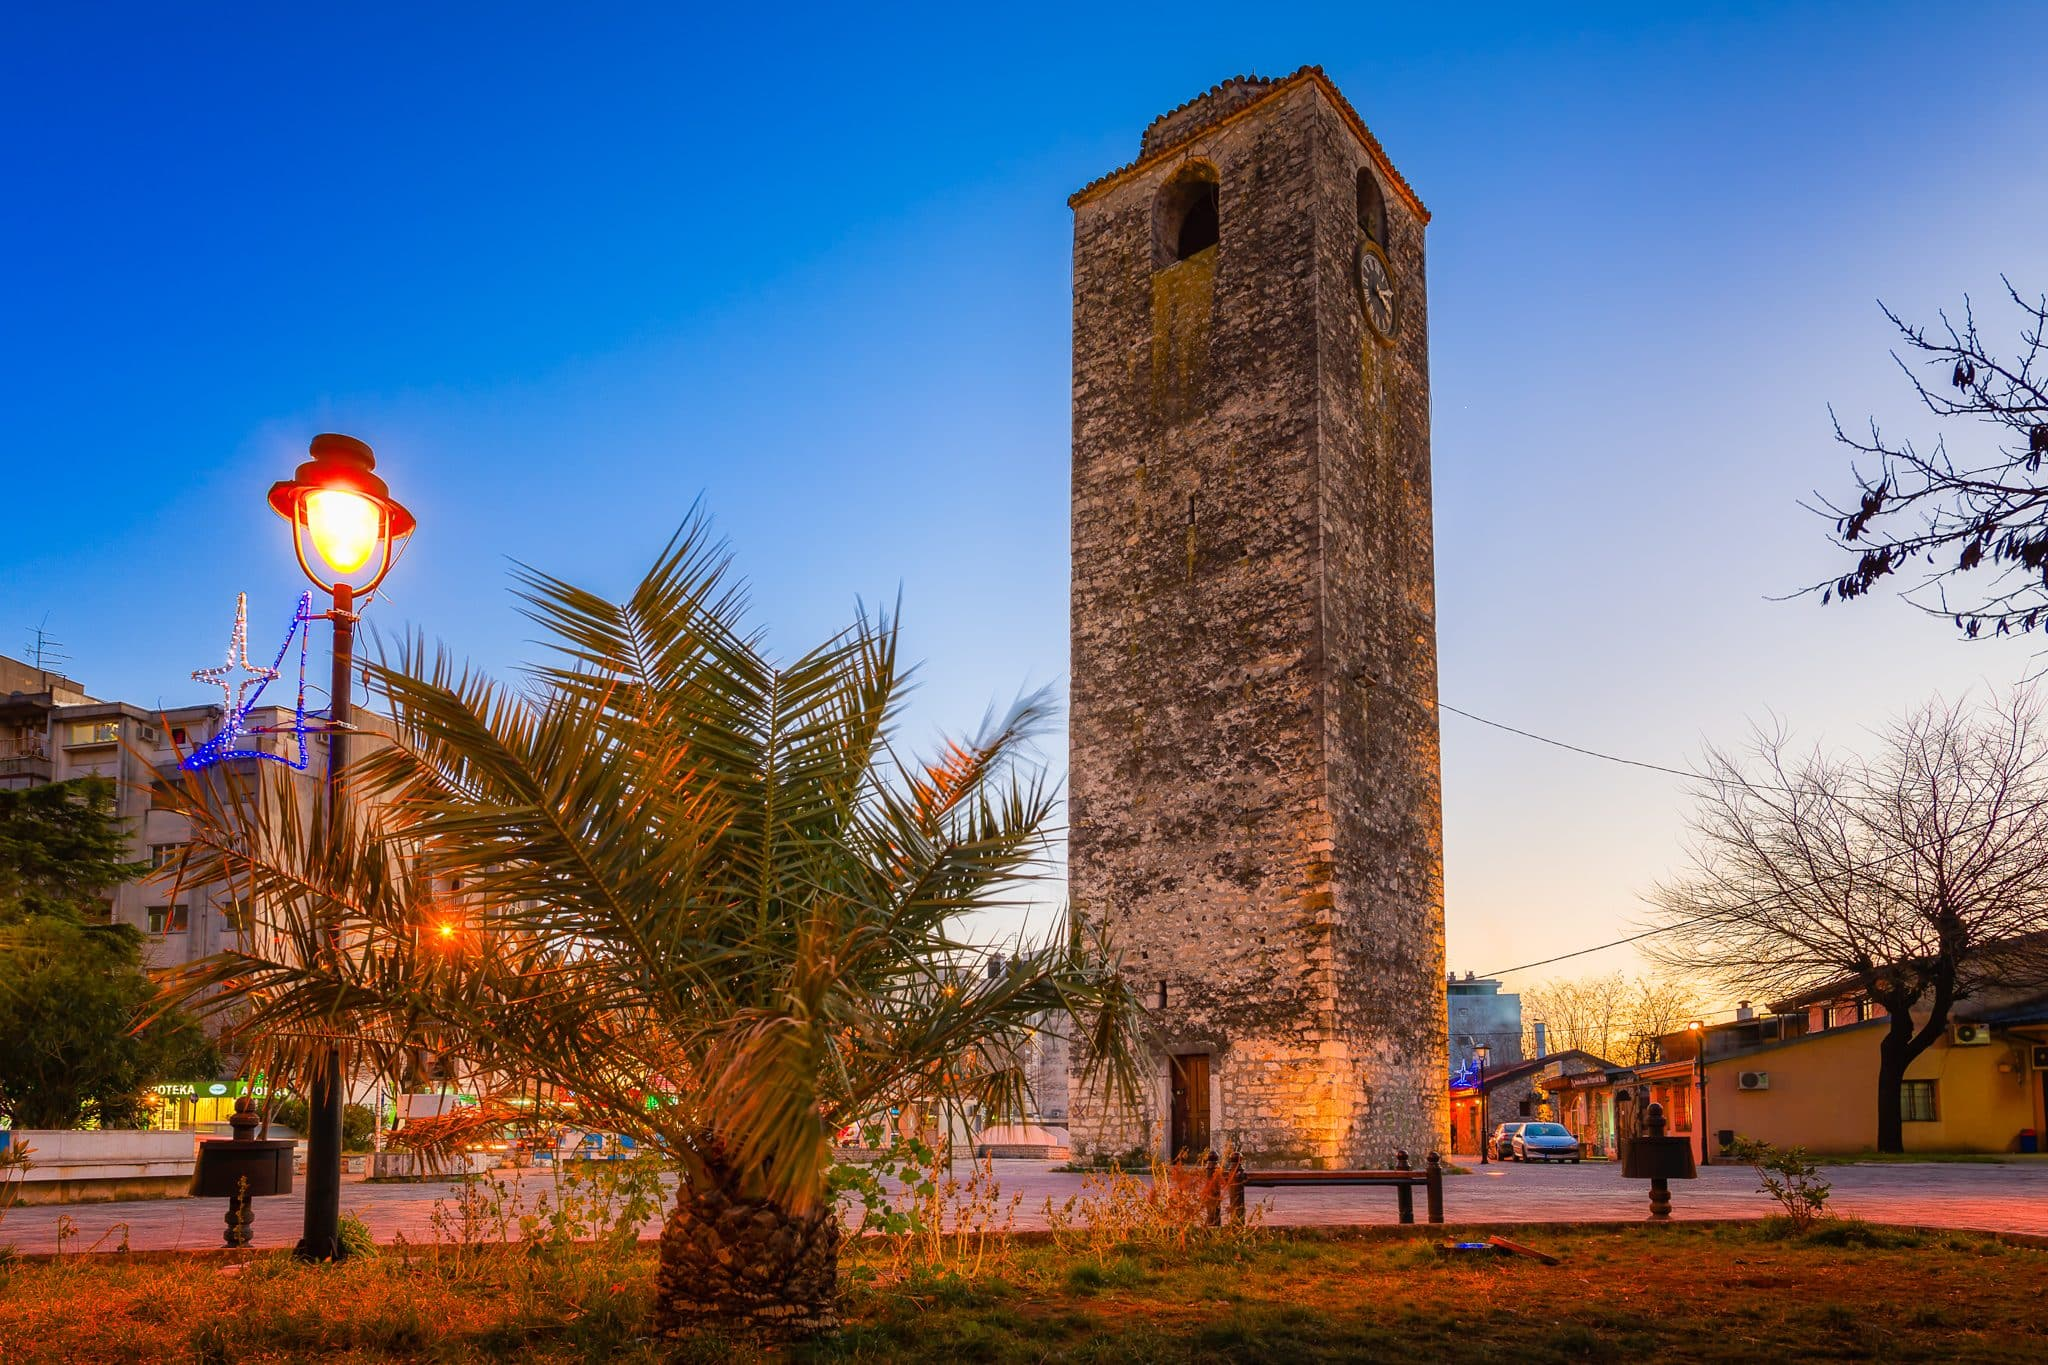 The Clock Tower in Podgorica Montenegro with colorful sky